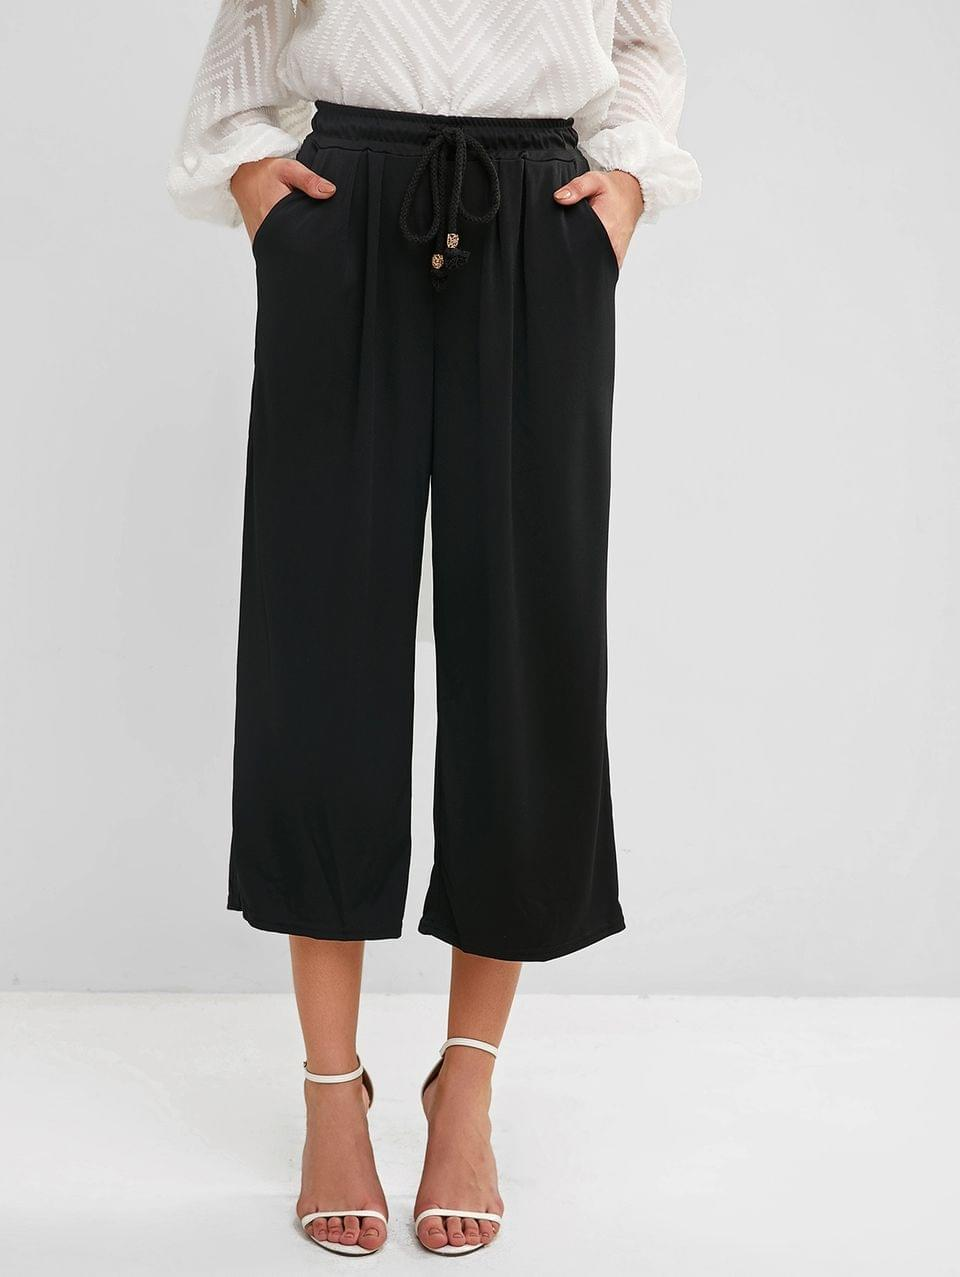 Women's Drawstring Pocket Gaucho Pants - Black L